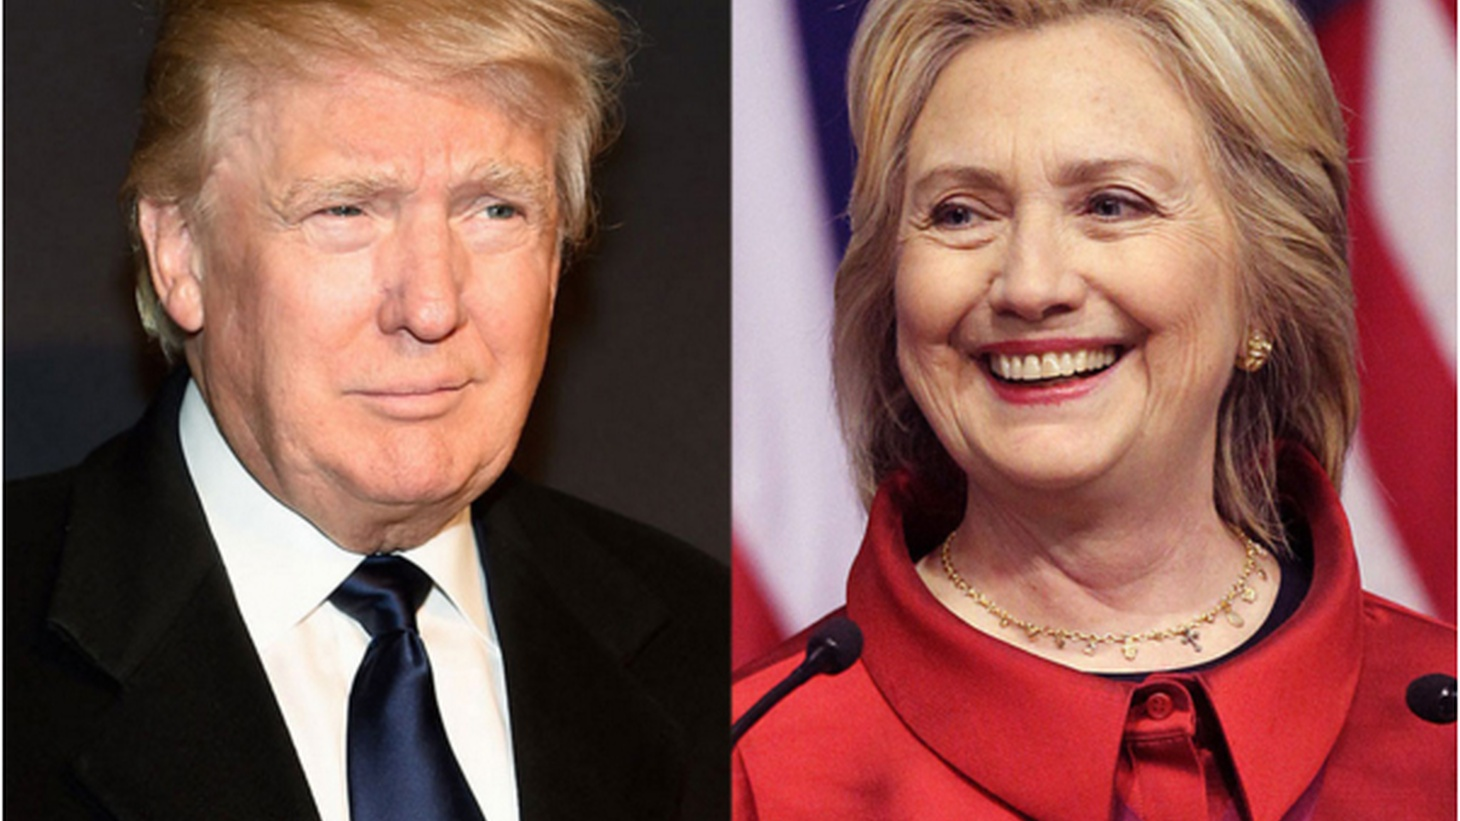 A new poll from USC shows it's a close race forDemocrats and Republicans in California's primary race, with Hillary Clinton and Donald Trump leading. We also hear from a man in Canada who's leading an effort to lure disillusioned Americans to an island in Nova Scotia.